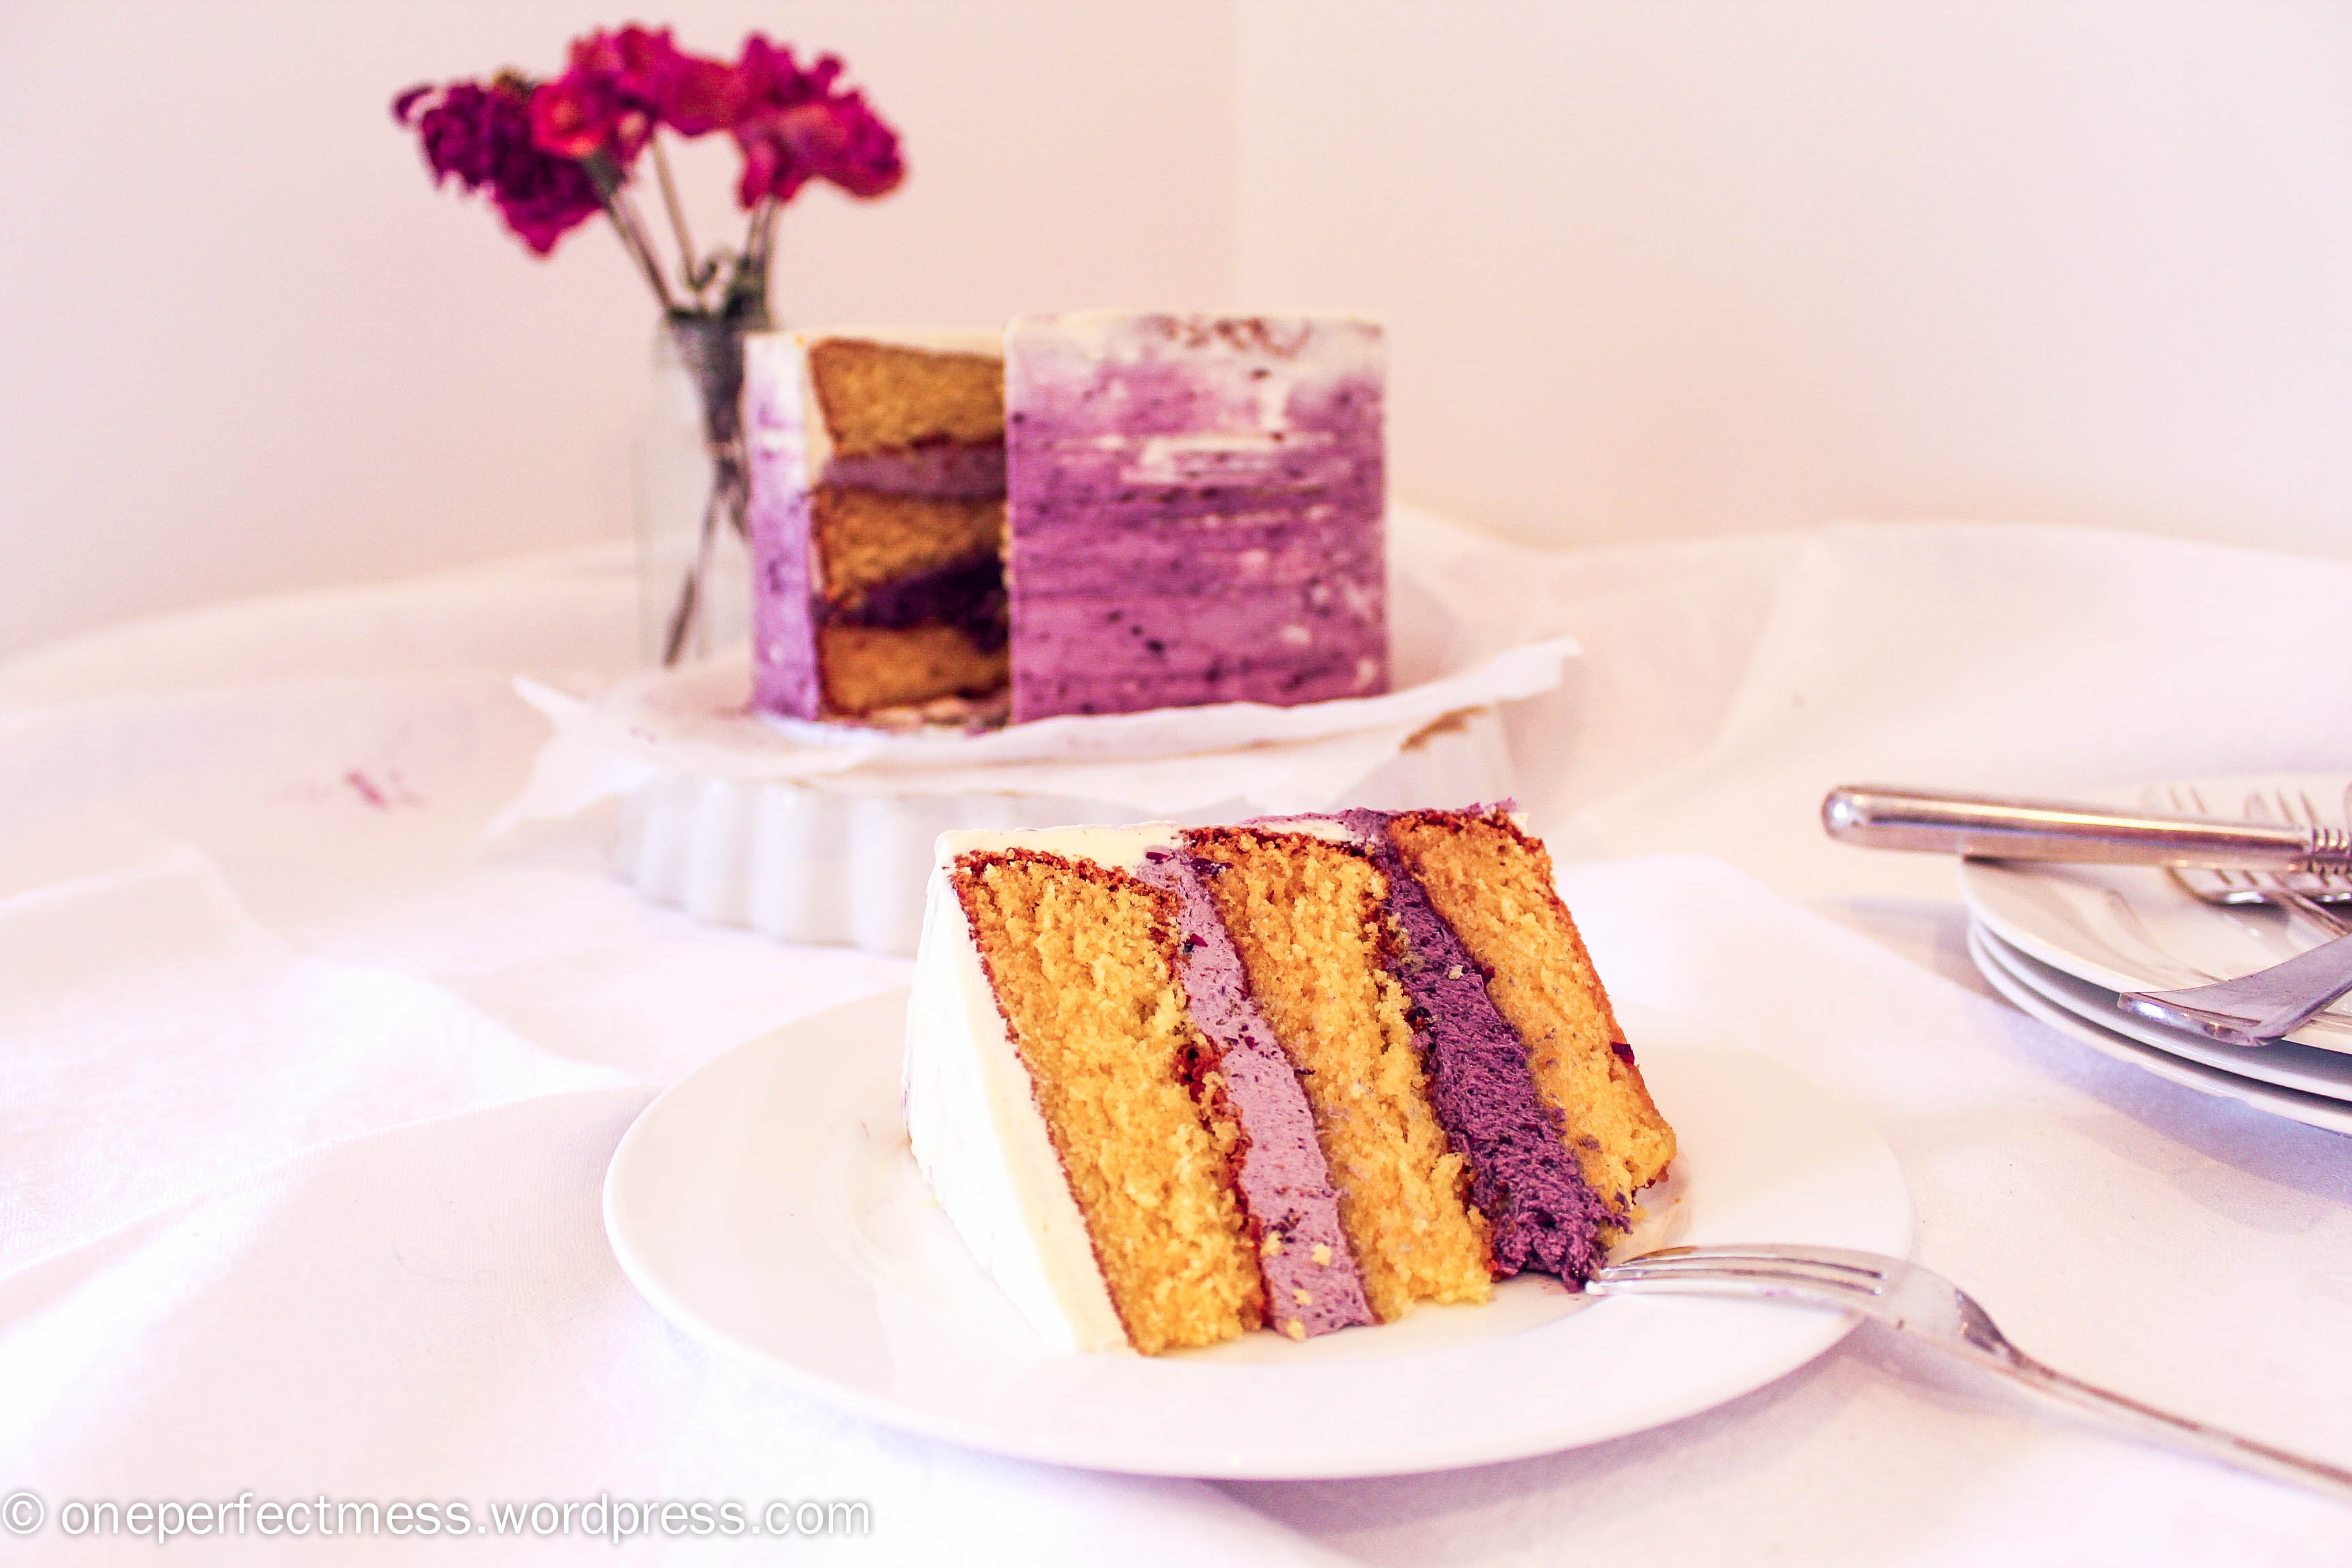 Cake recipe for one